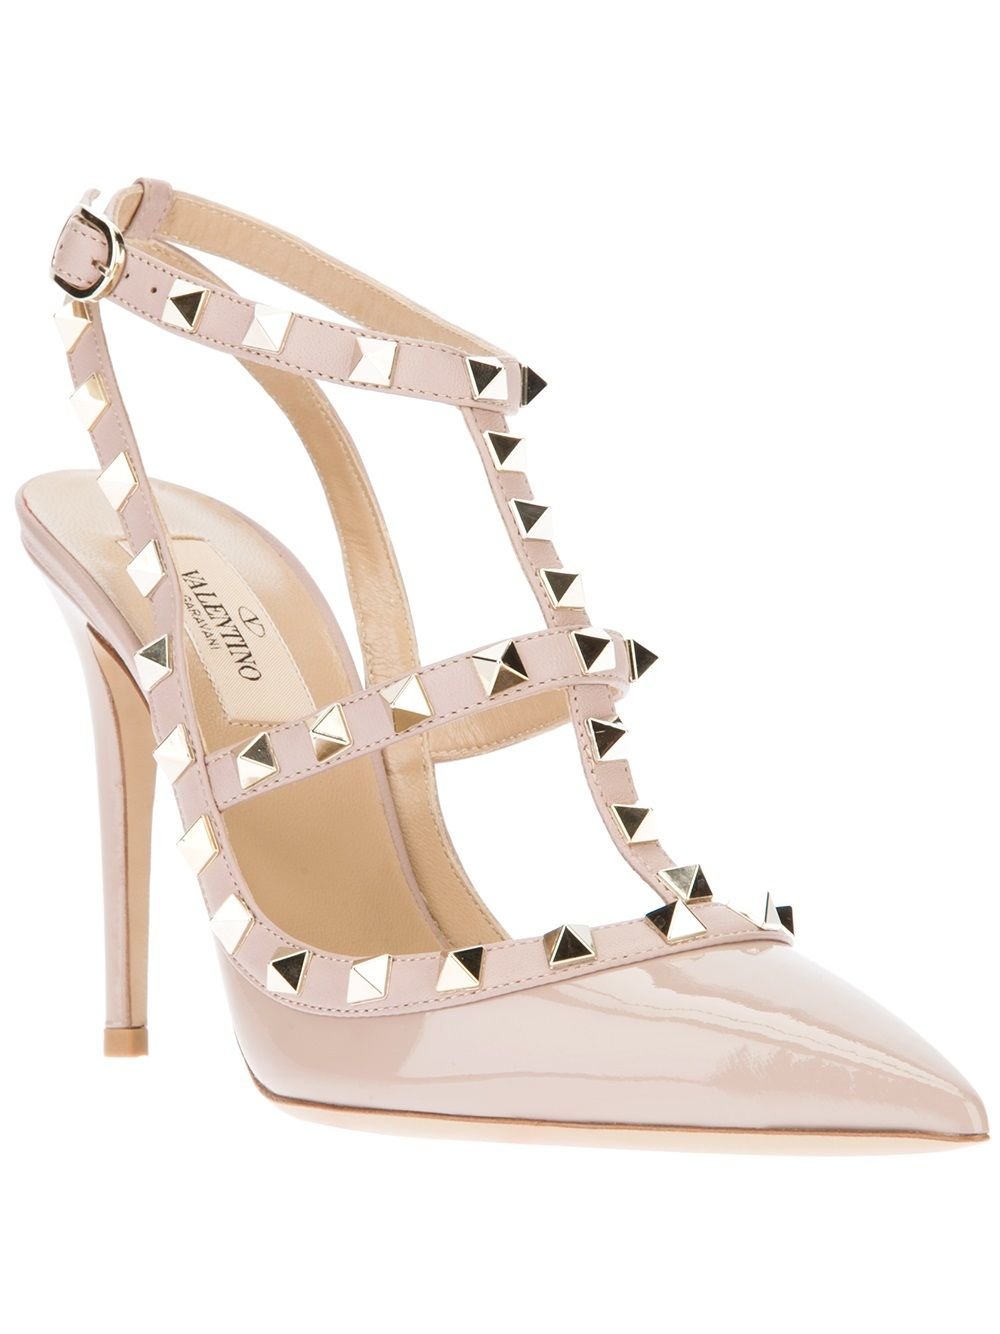 922345e372e VALENTINO GARAVANI  Rockstud  pump - Christmas is around the corner mates!!  I